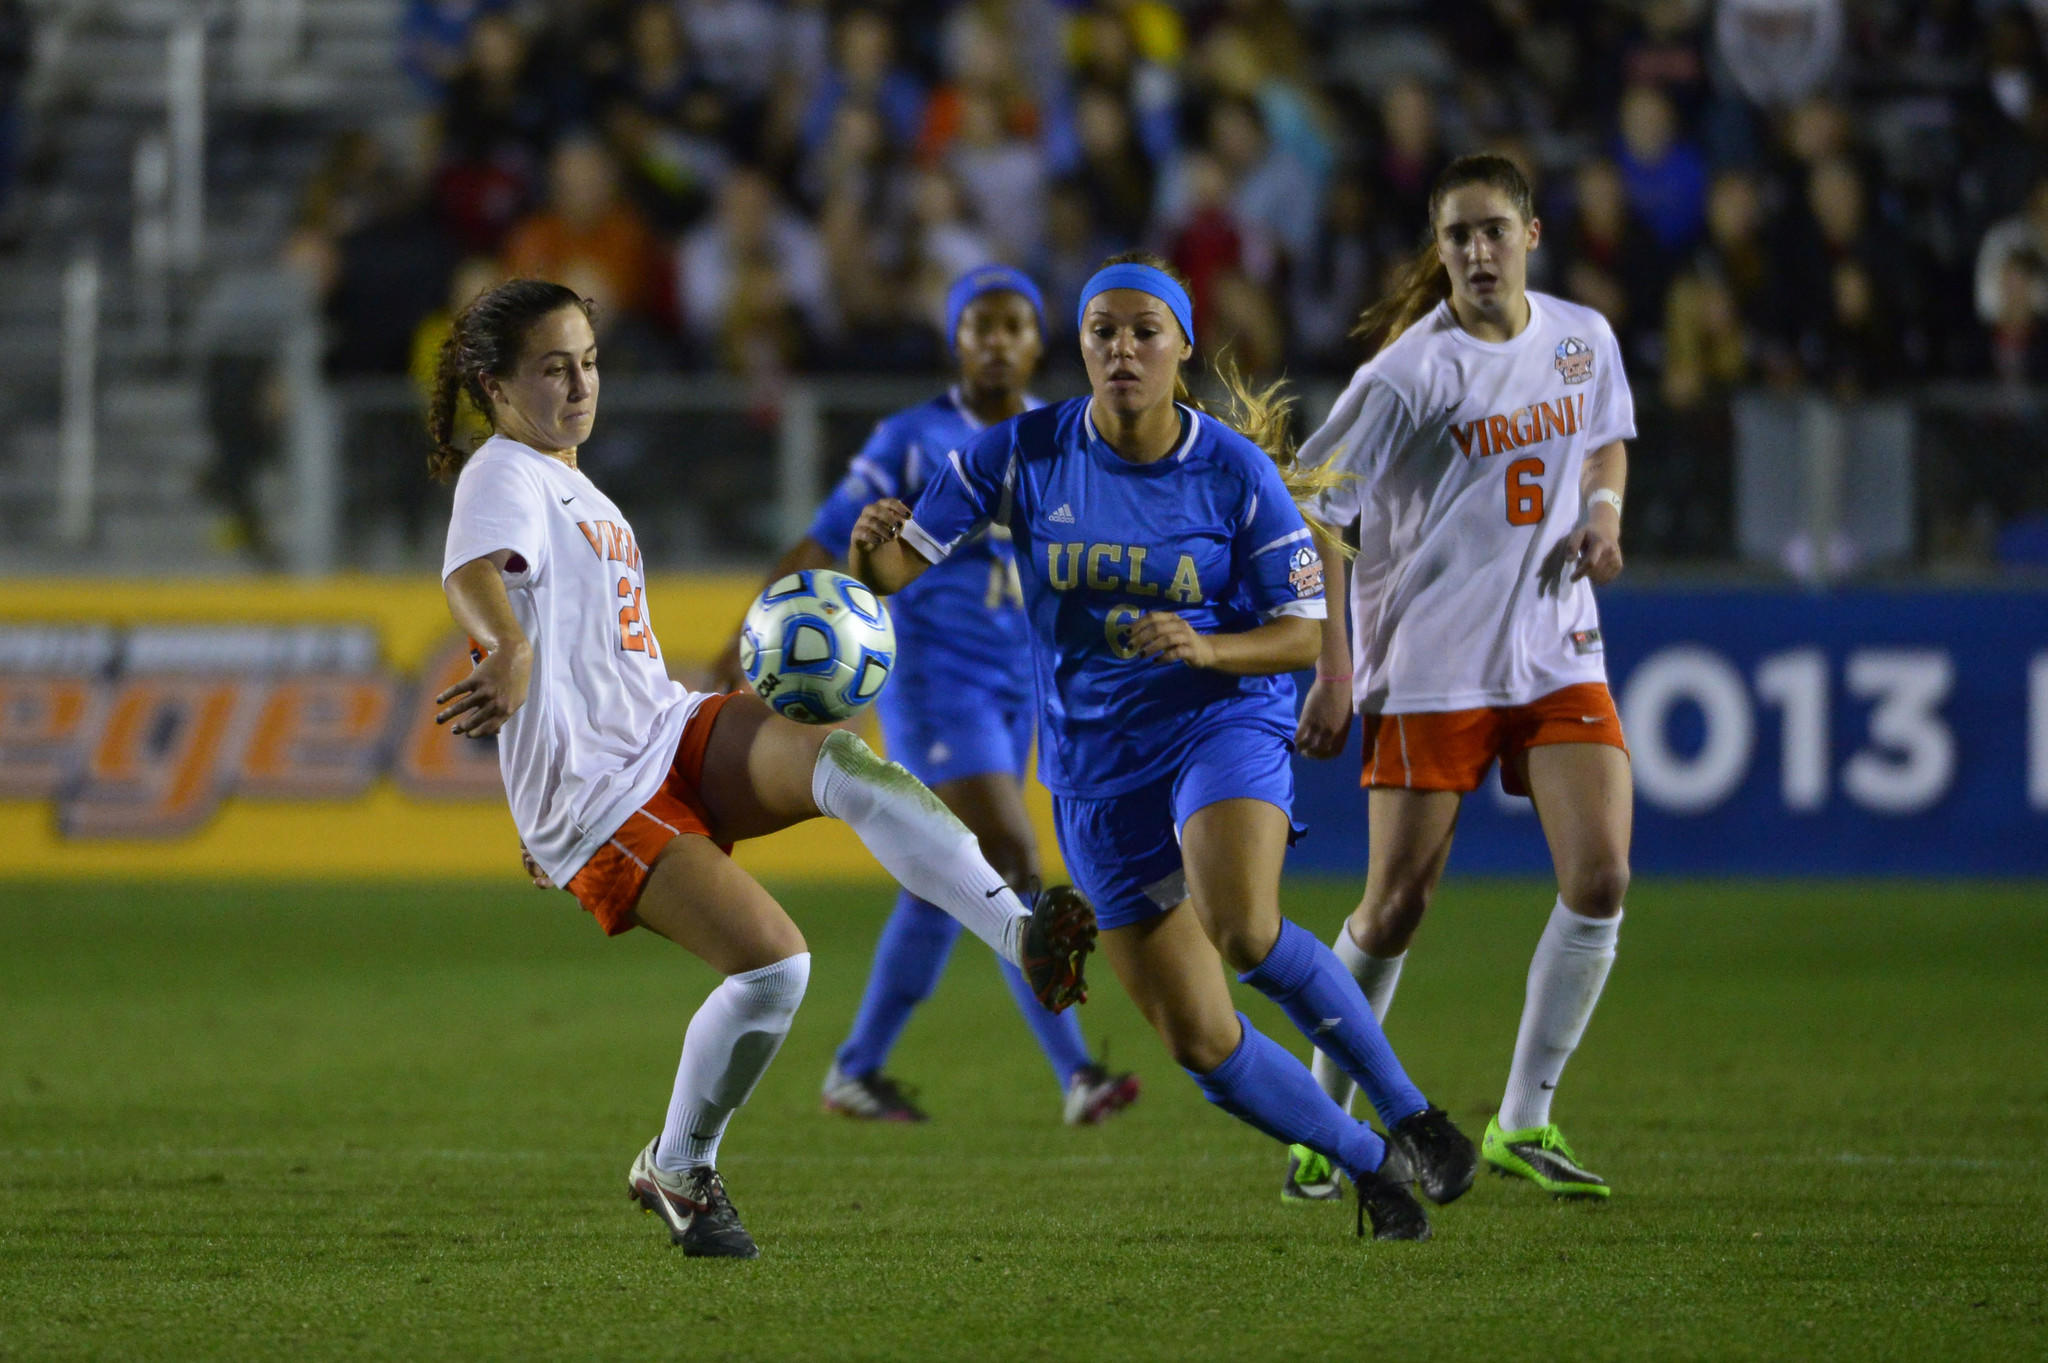 Virginia midfielder Danielle Colaprico, left, kicks the ball as midfielder Morgan Brian, right, watches against UCLA in December in Cary, N.C.